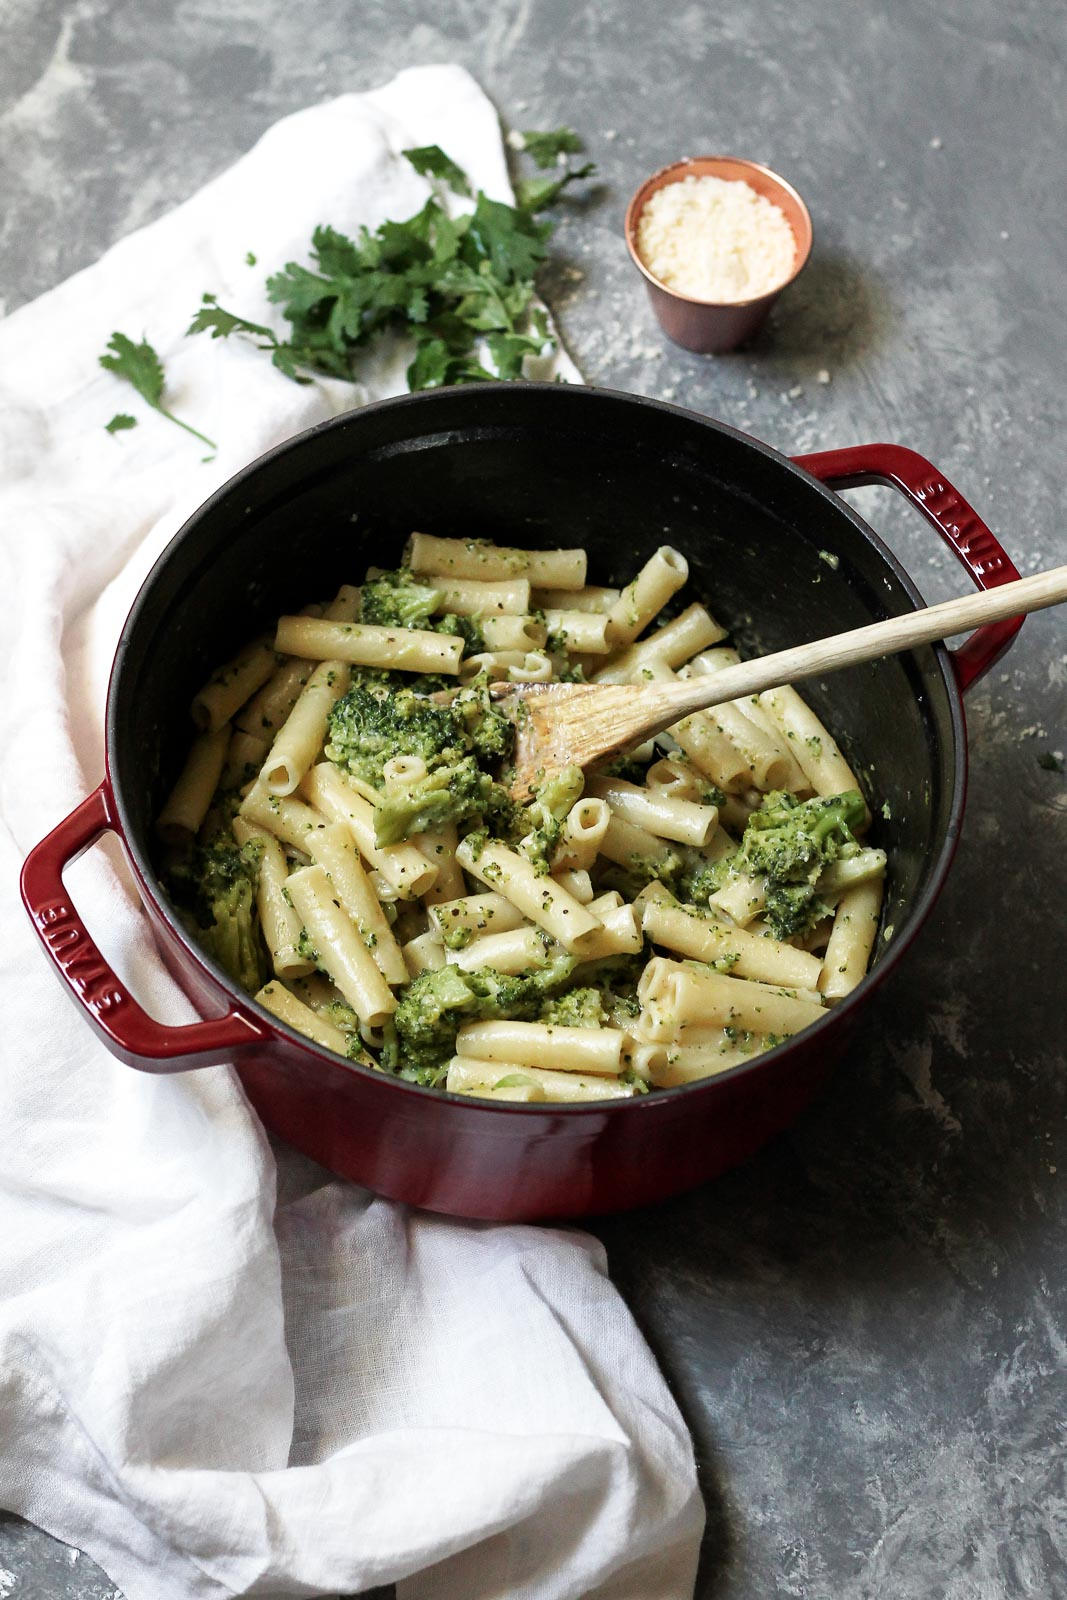 Delicious 30 minute skinny Alfredo ziti pasta with broccoli! Add chicken for extra protein. Perfect for an easy weeknight meal.